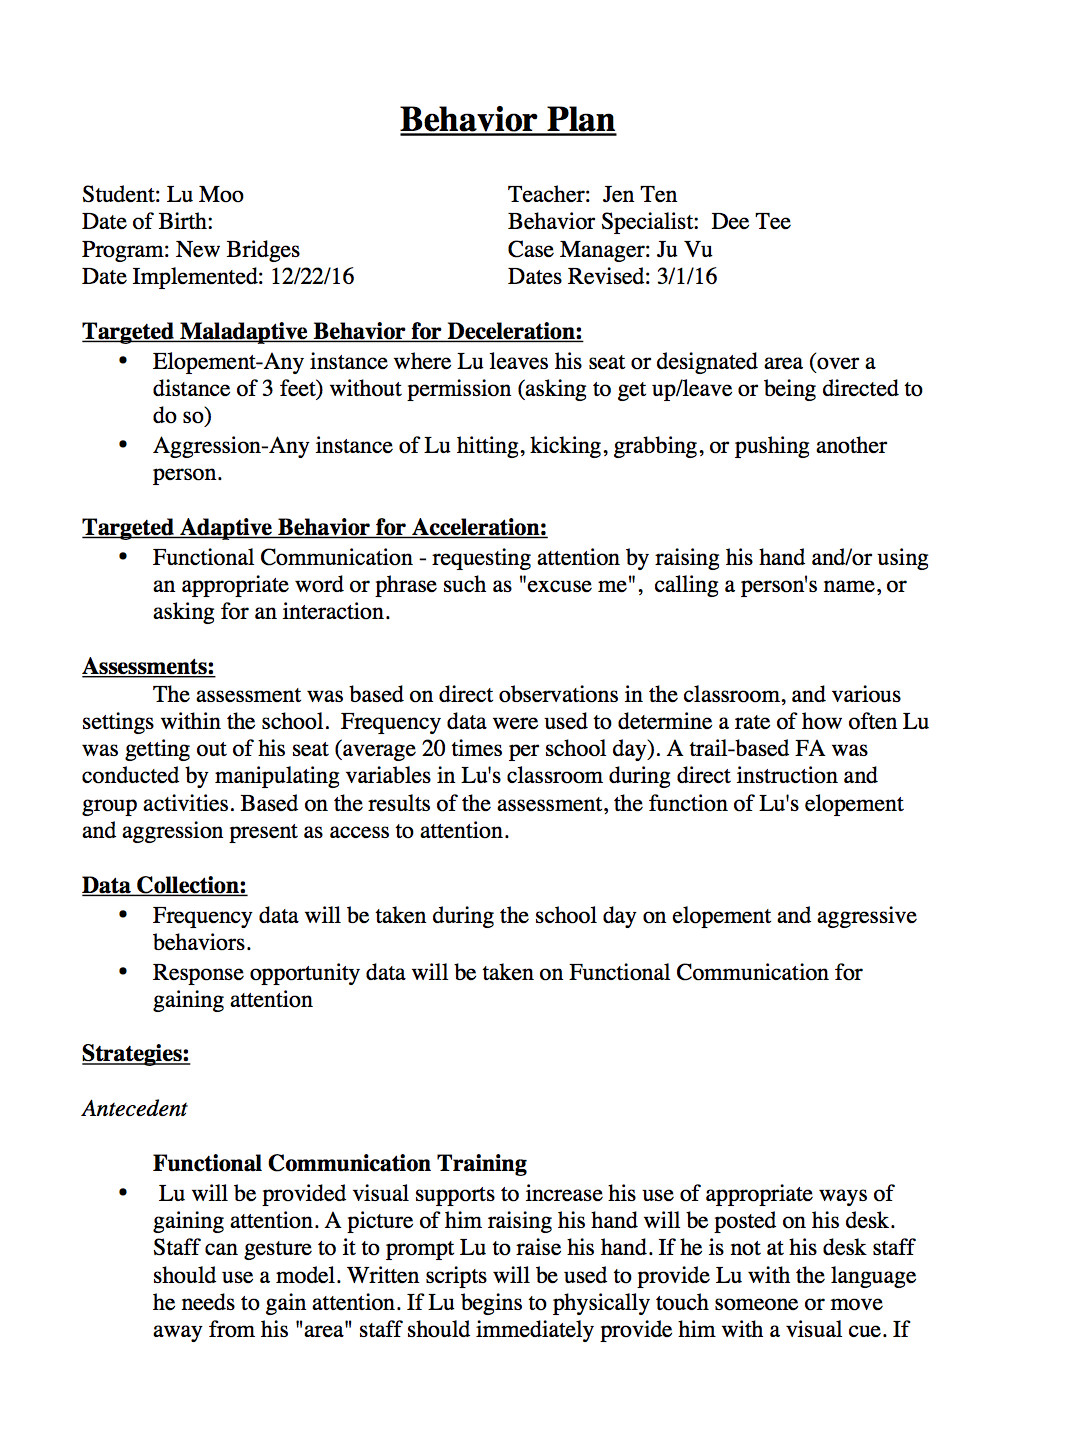 Behavior Modification Plan Example Sample Behavior Intervention Plan Template